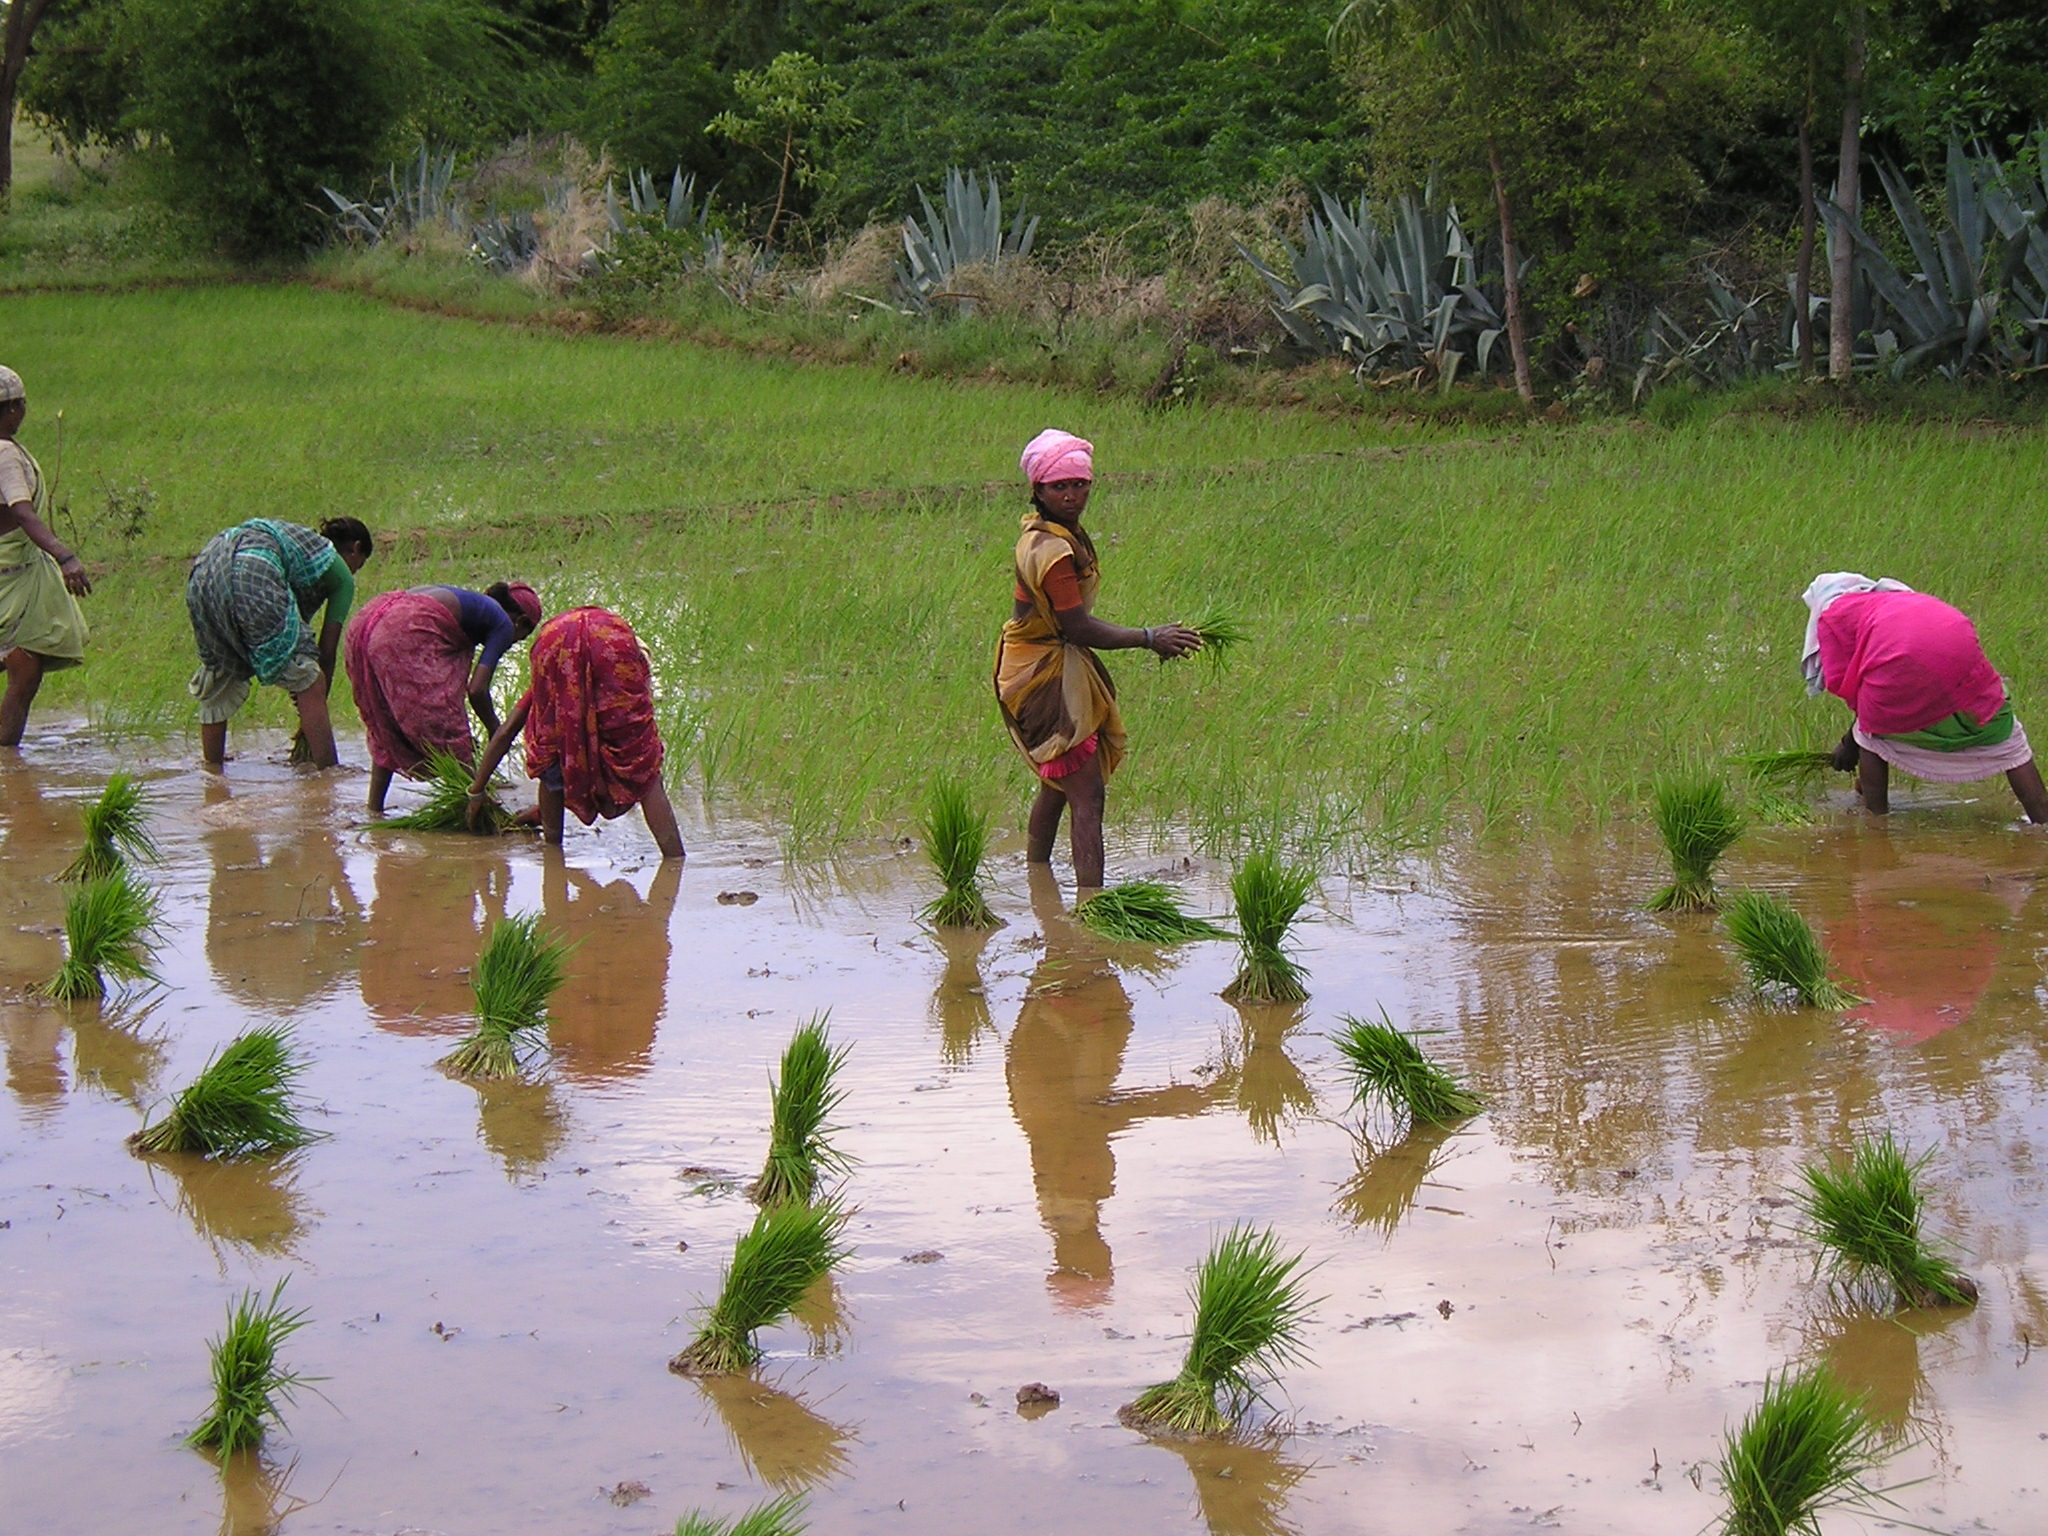 Women transplanting rice plants